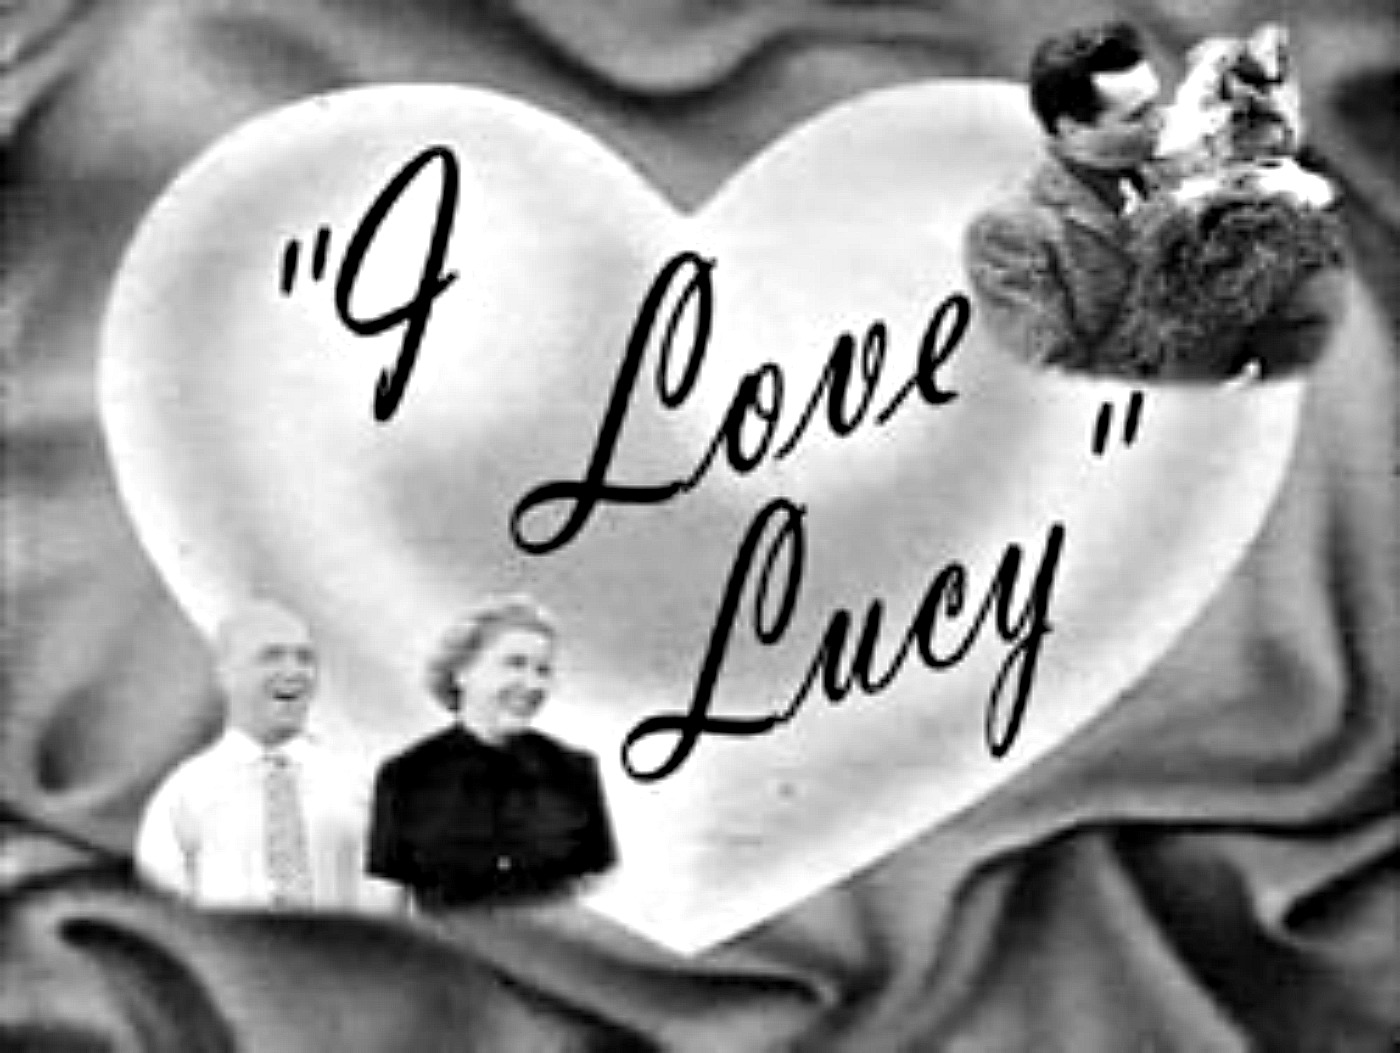 I cinta Lucy wallpaper